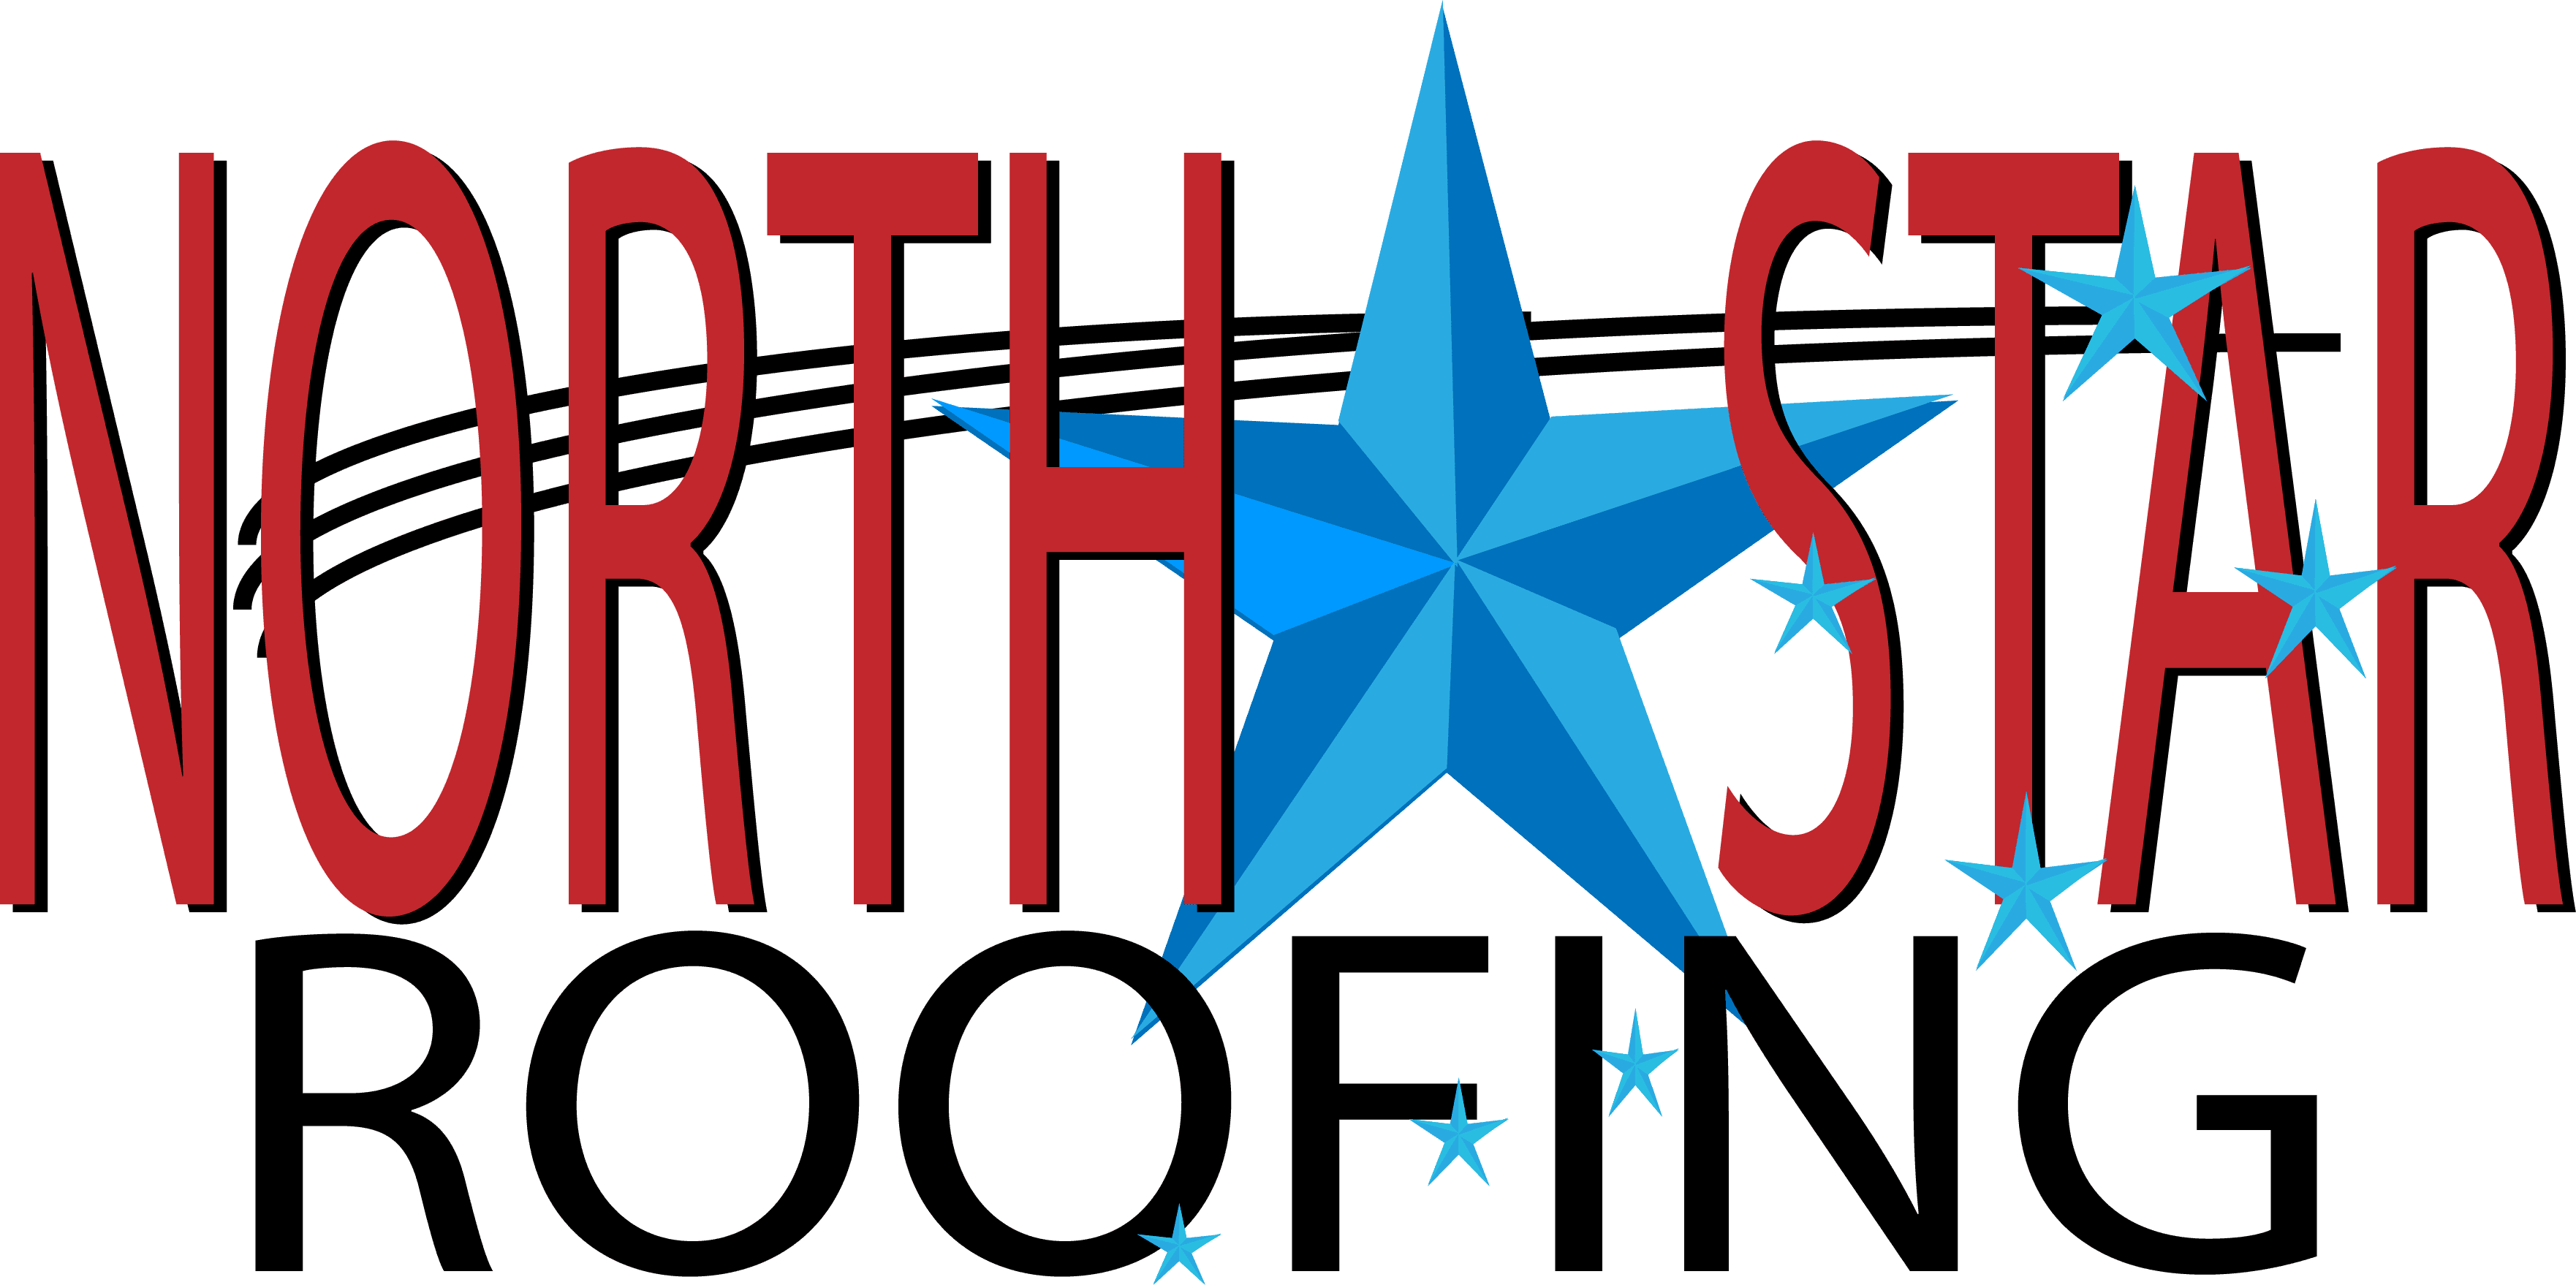 Great North Star Roofing .pro Plains Montana Commercial Conklin Roofer